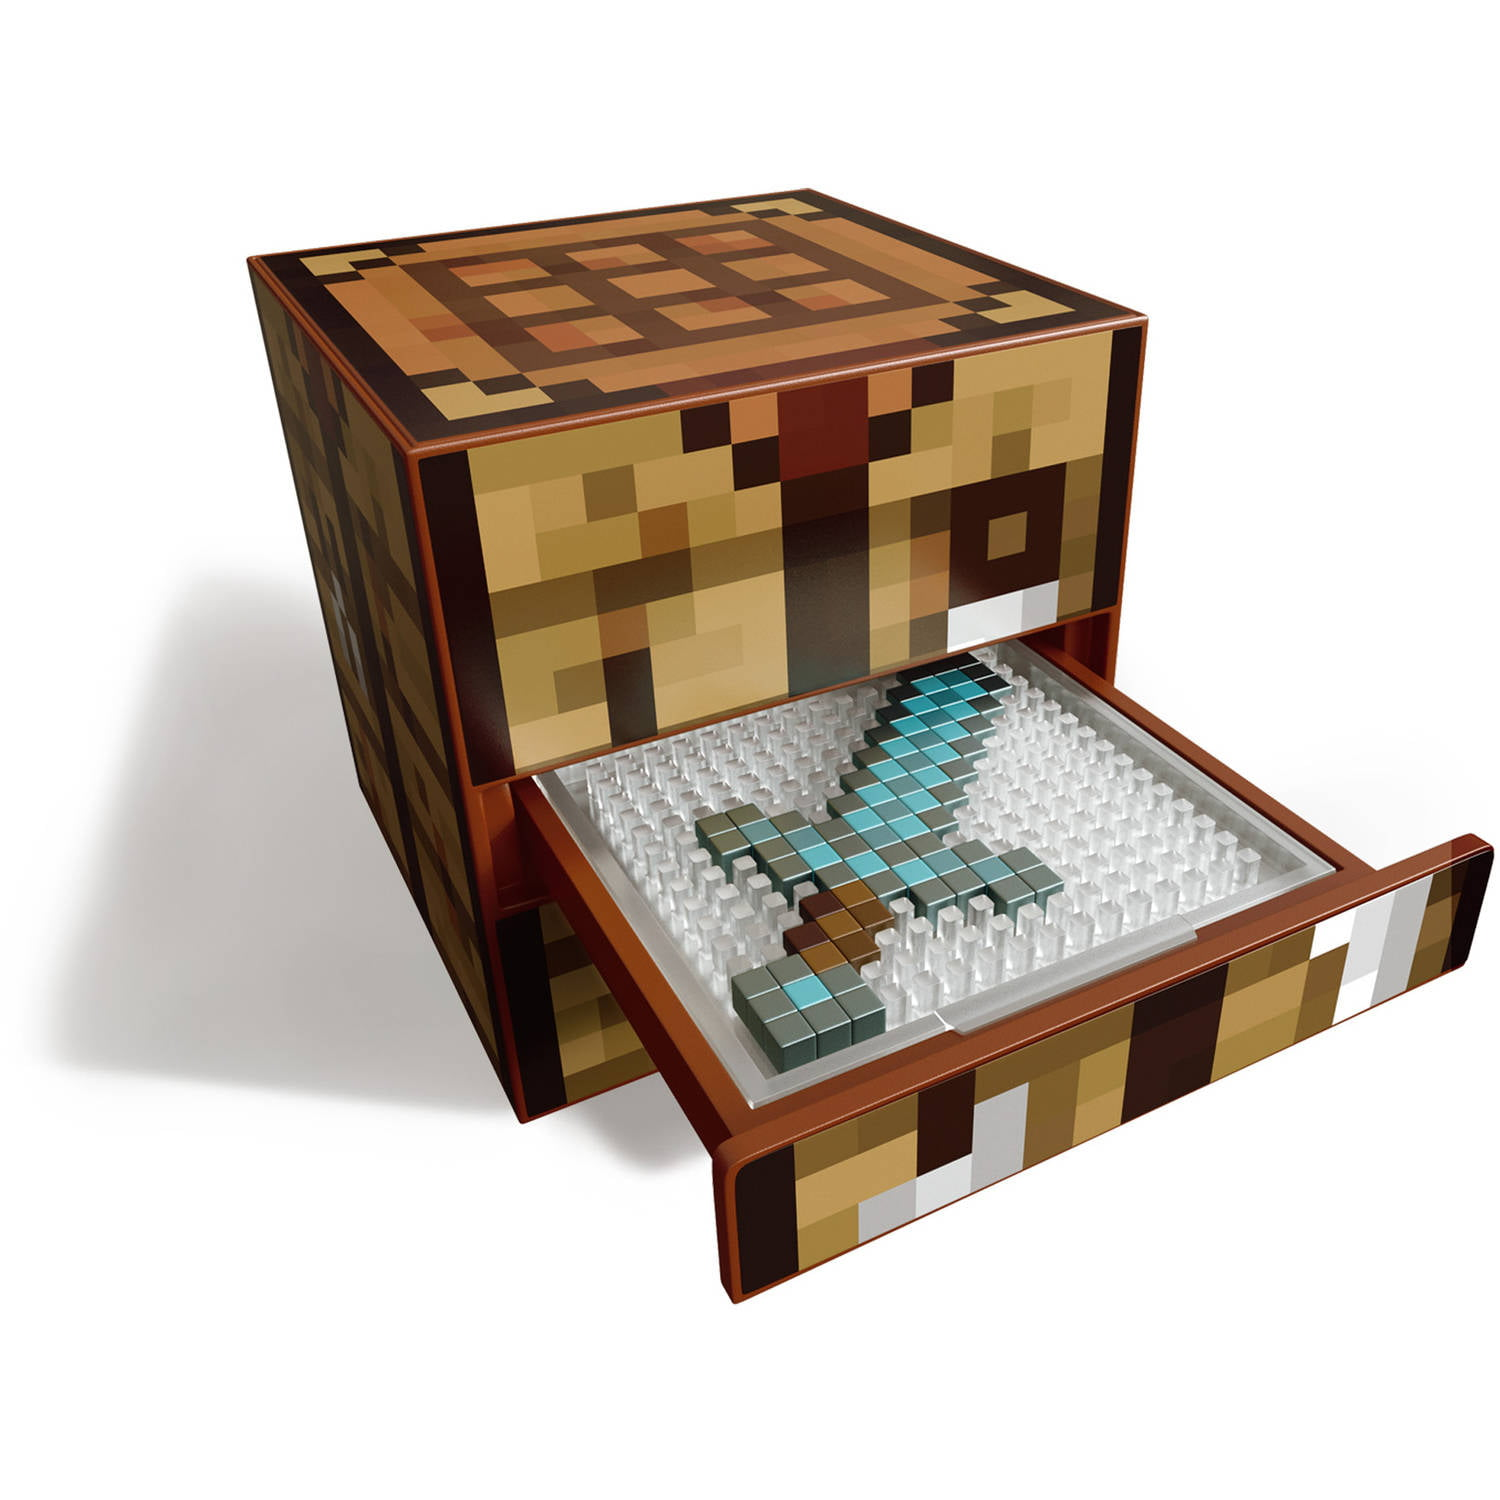 Crafting table in minecraft - Crafting table on minecraft ...